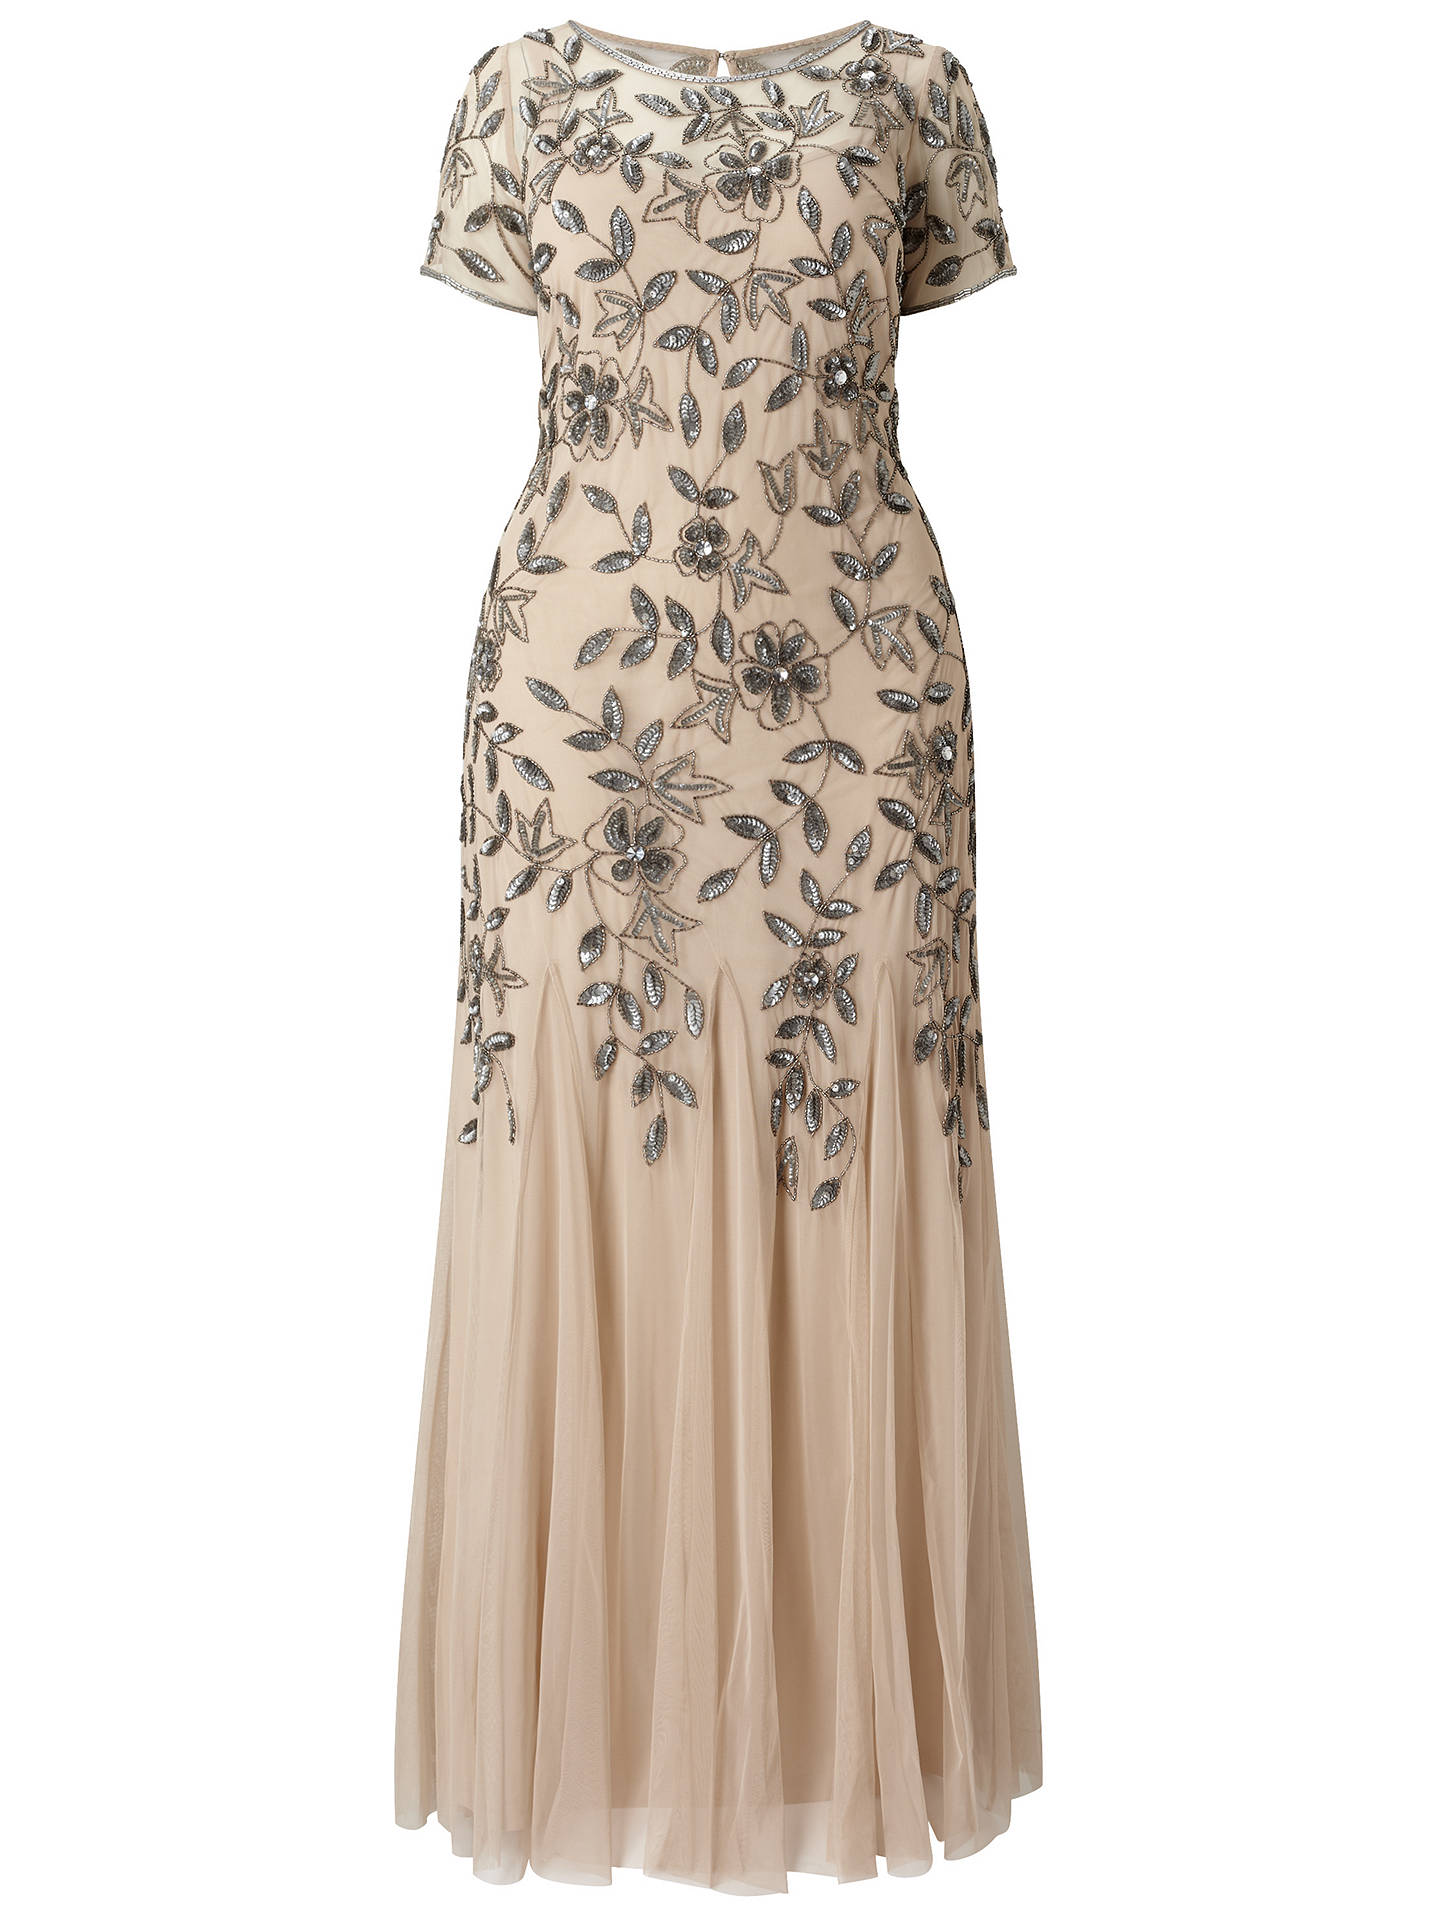 Adrianna Papell Plus Size Floral Beaded Godet Gown, Taupe